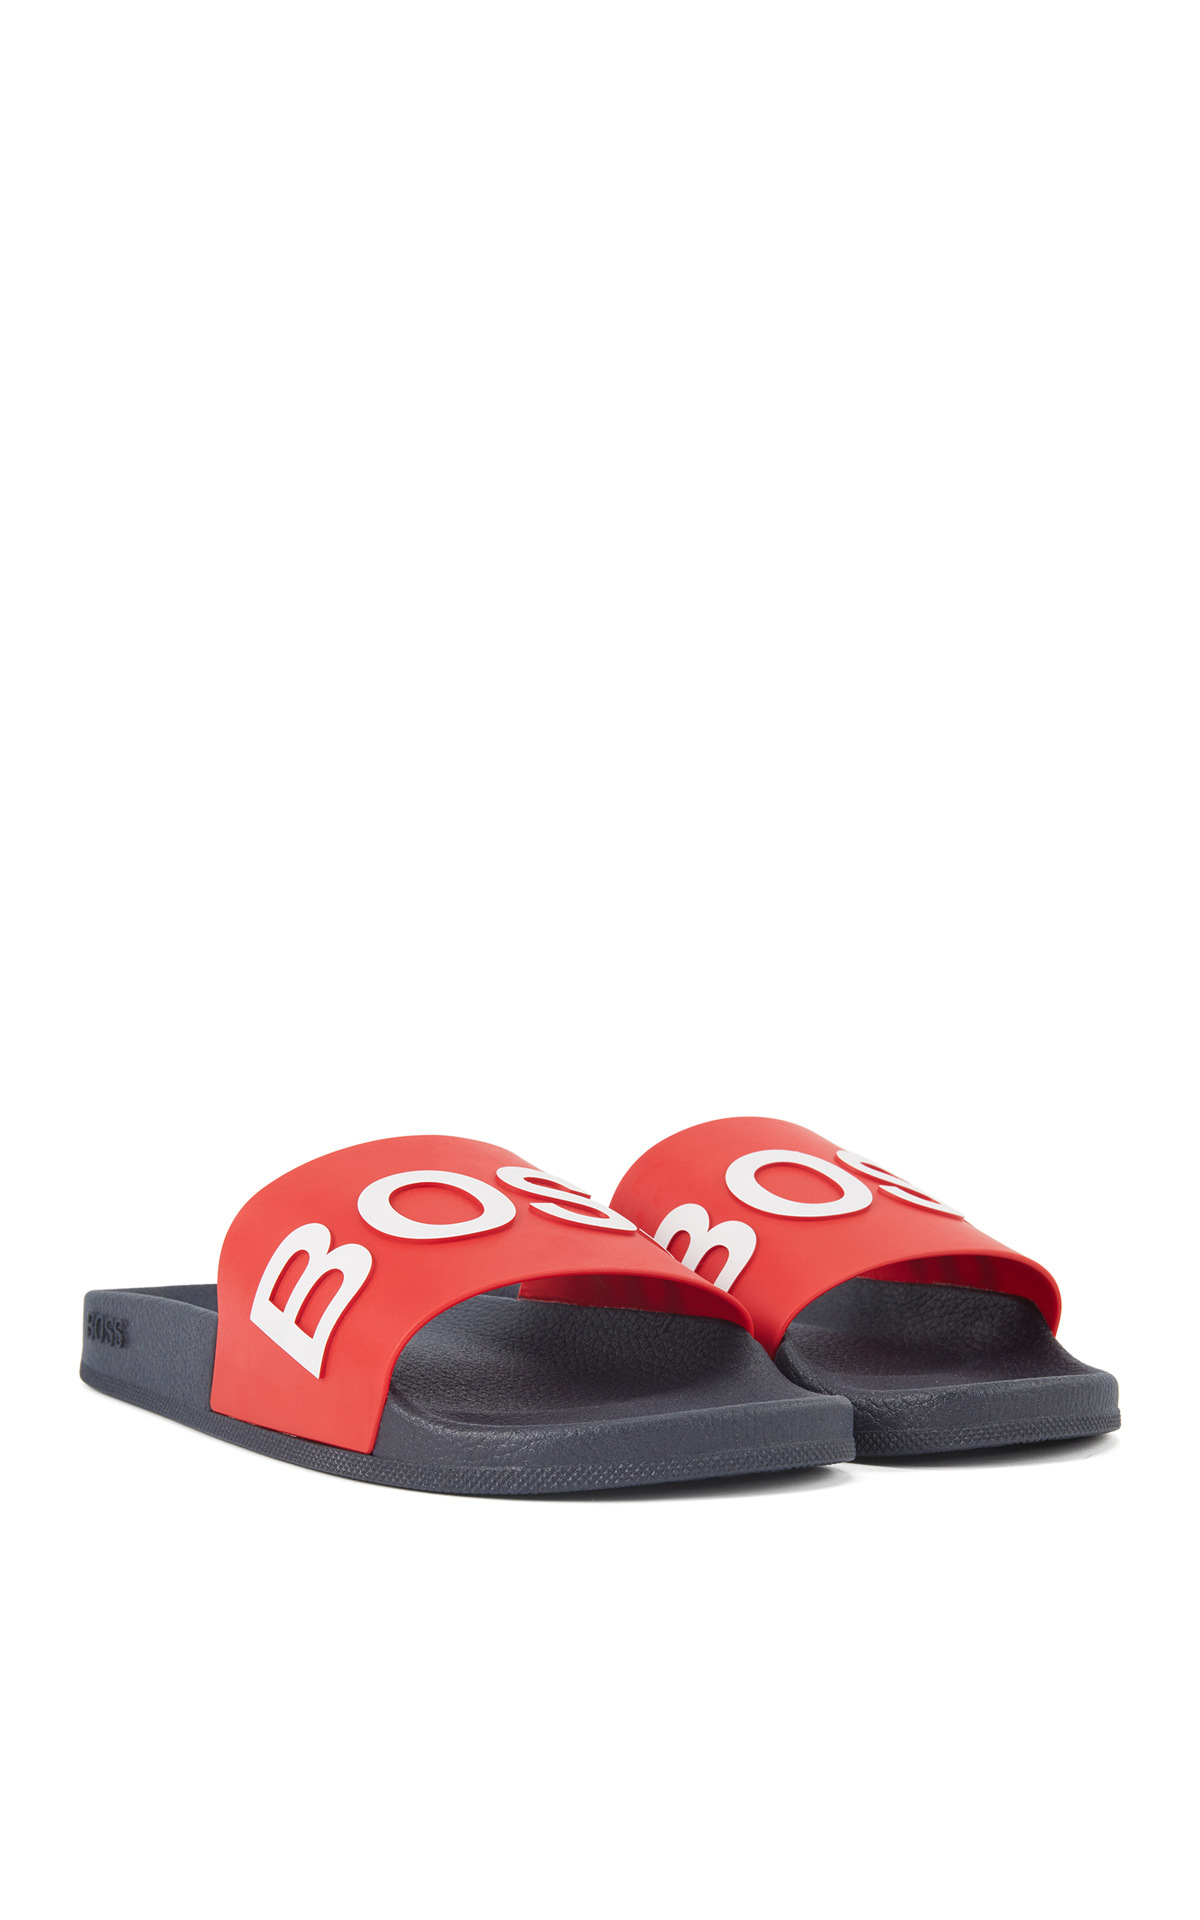 BOSS slides at The Bicester Village Shopping Collection